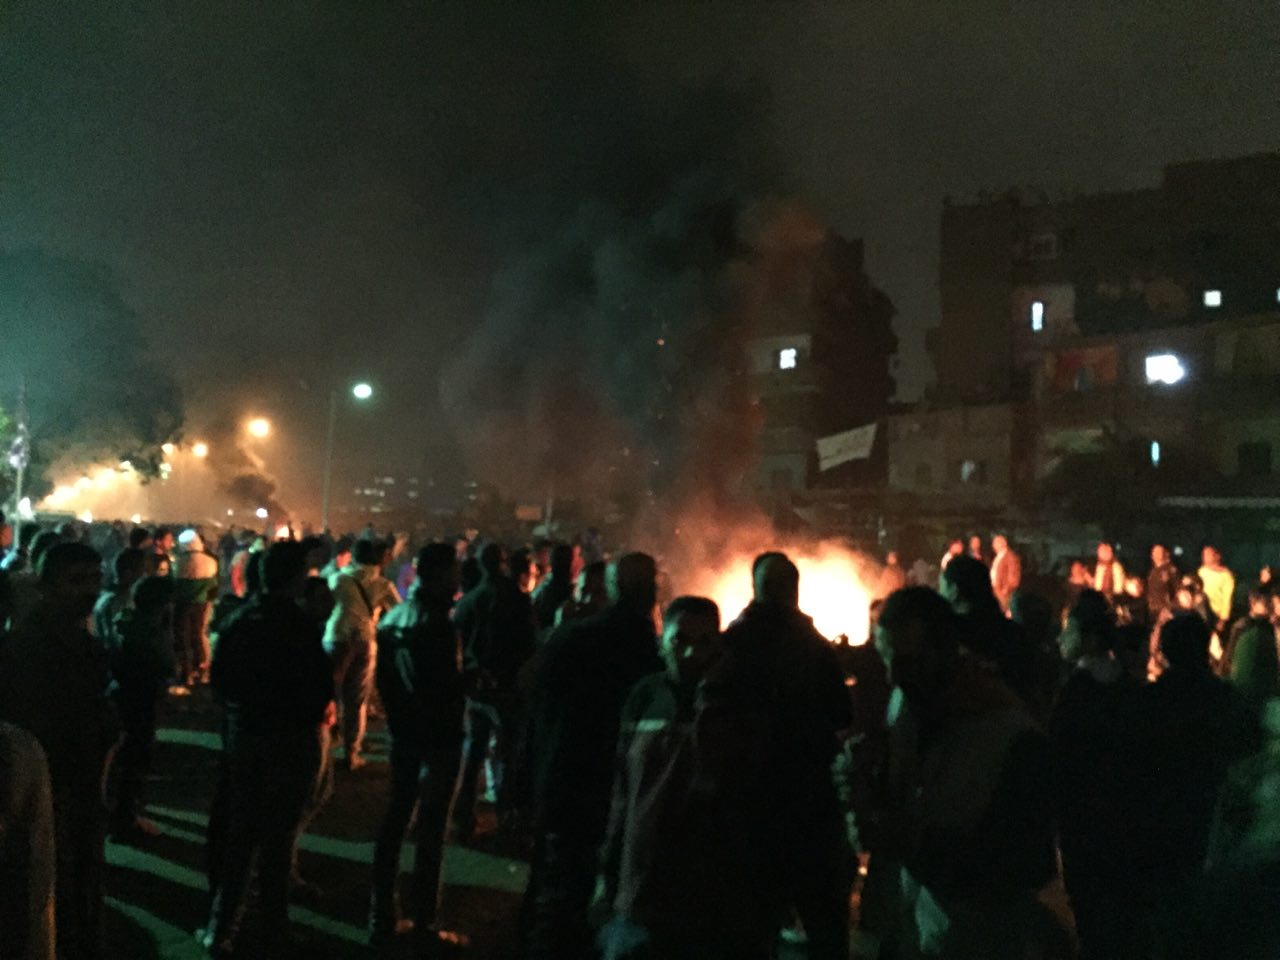 Clashes Sunday at Matariya Square left at least 12 protesters dead. Photo shows a gathering of demonstrators around a fire. Photo provided to Daily News Egypt by a protester